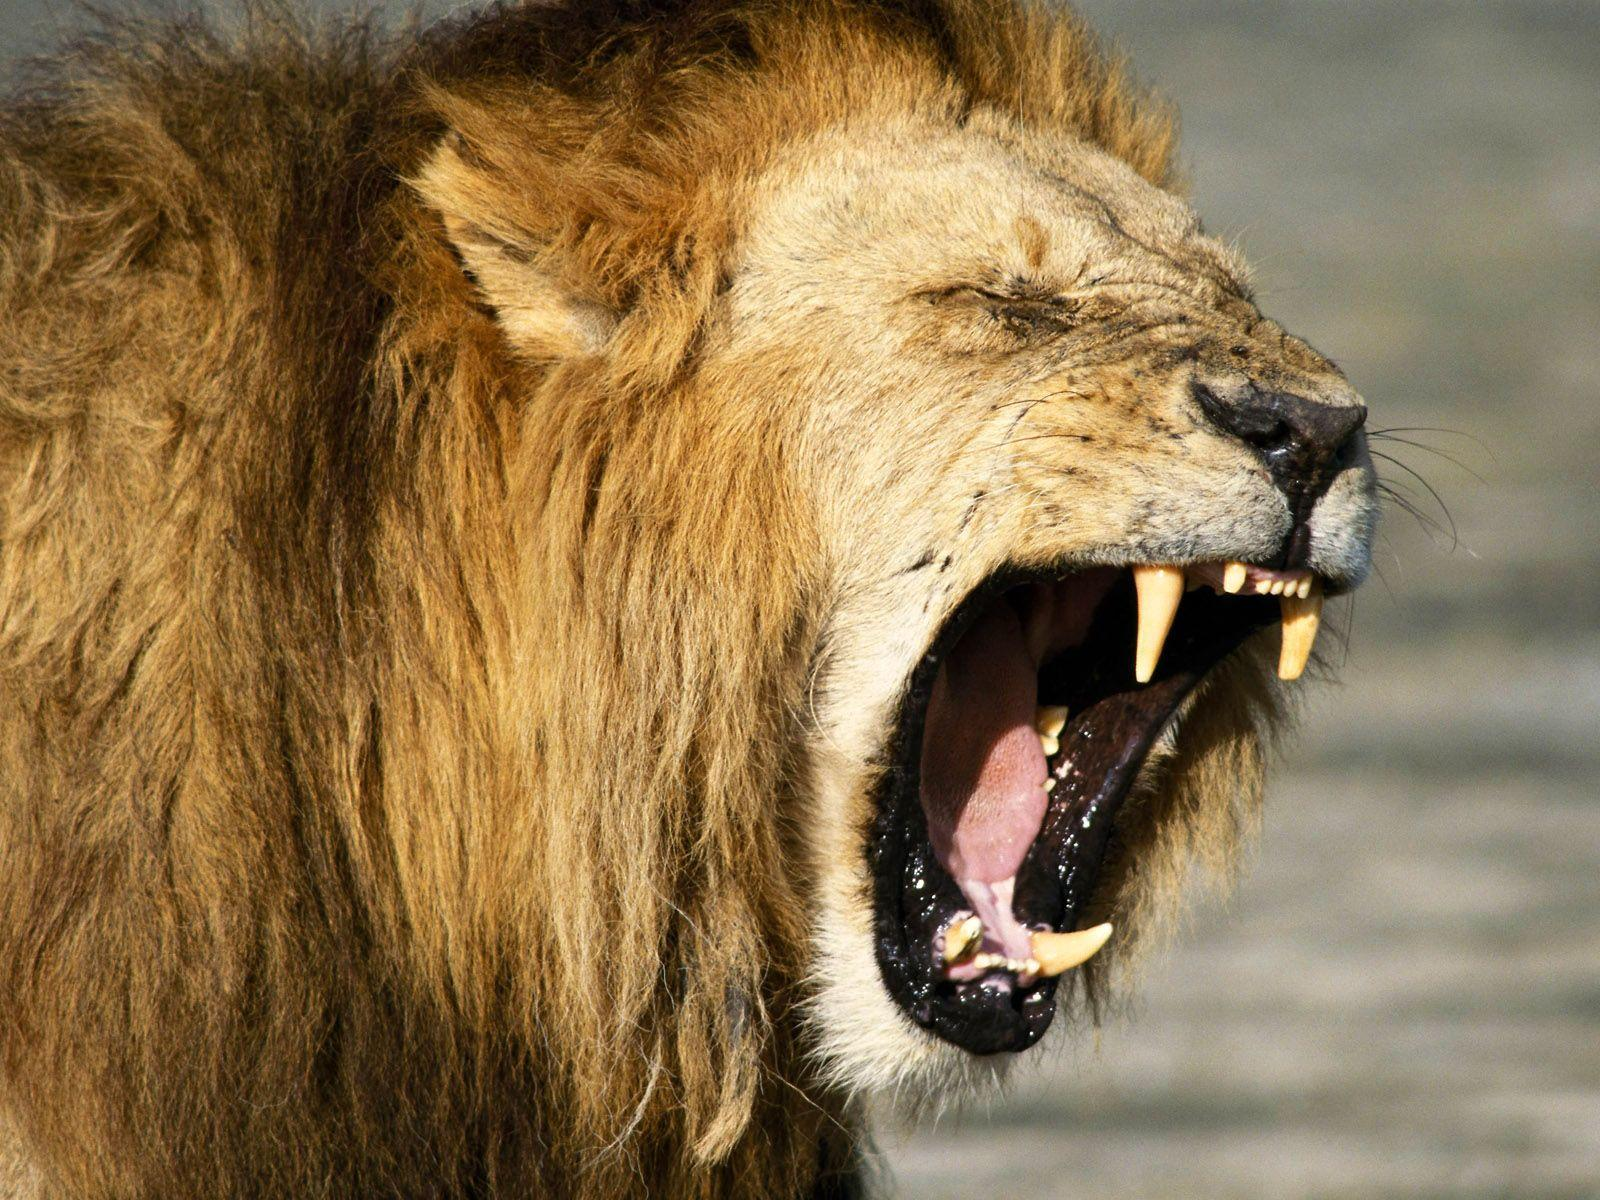 25+ best ideas about Lion wallpaper on Pinterest | Lions in the ...